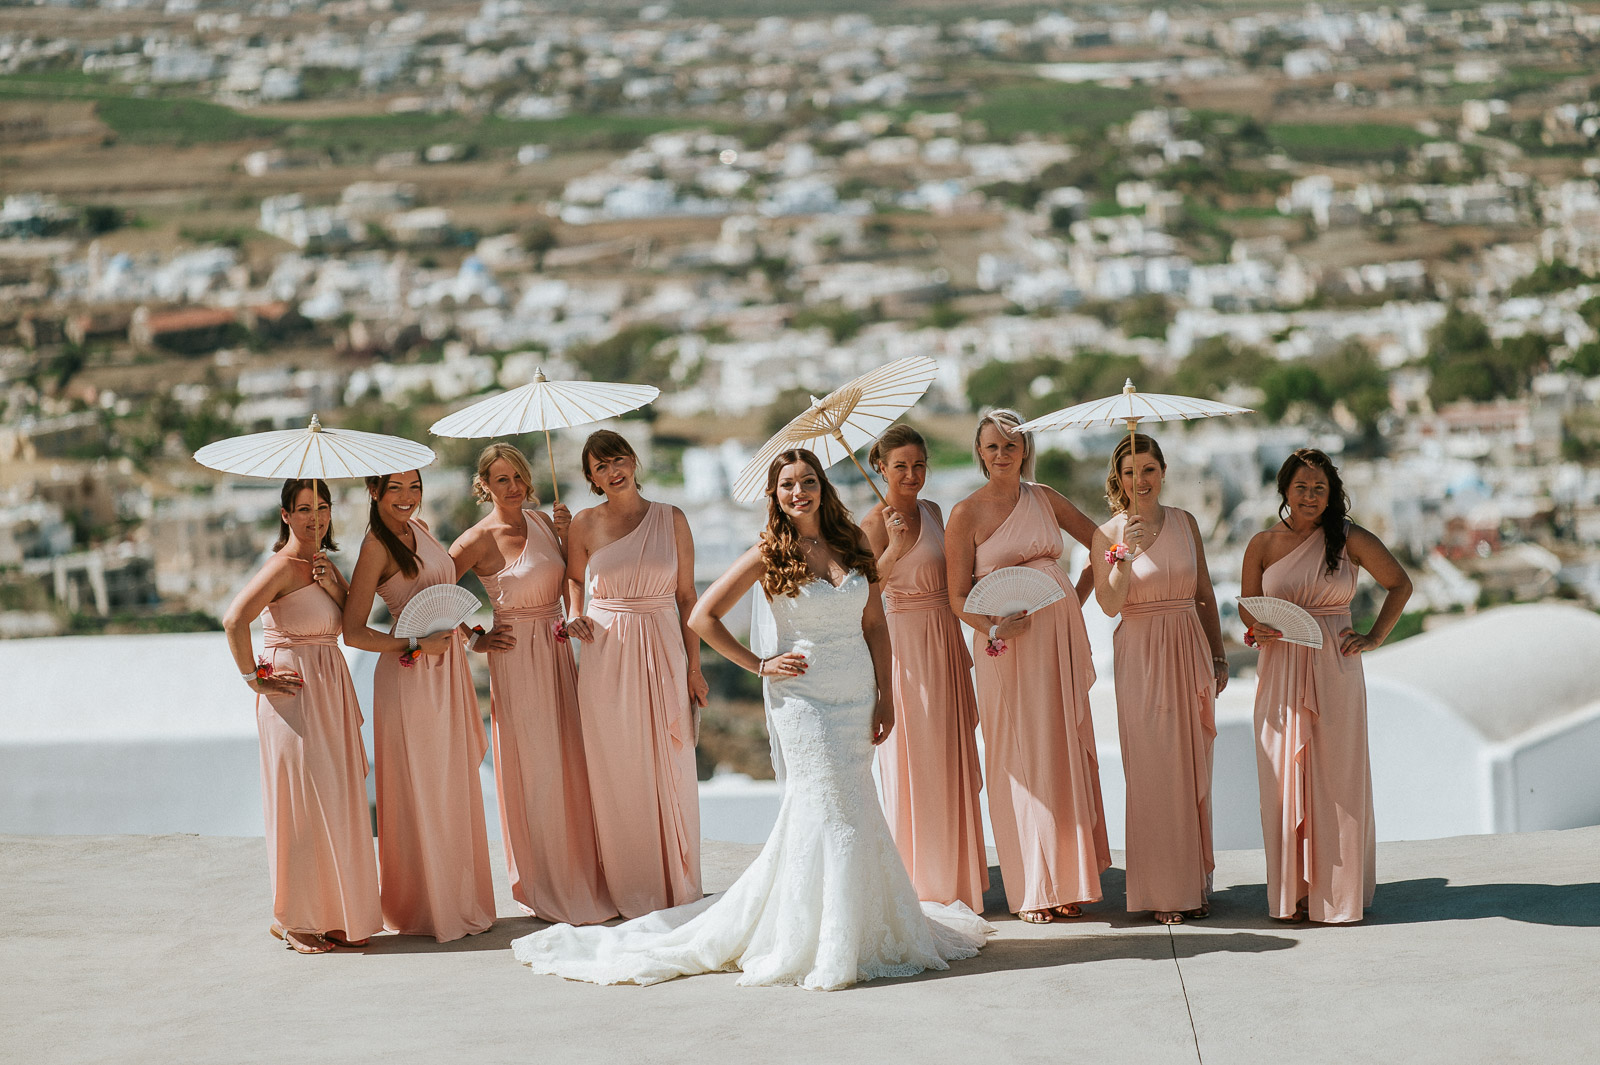 Santorini-Wedding-Photographer-Greece-Destination-Weddings-Mait-Juriado-M&J-Studios-040